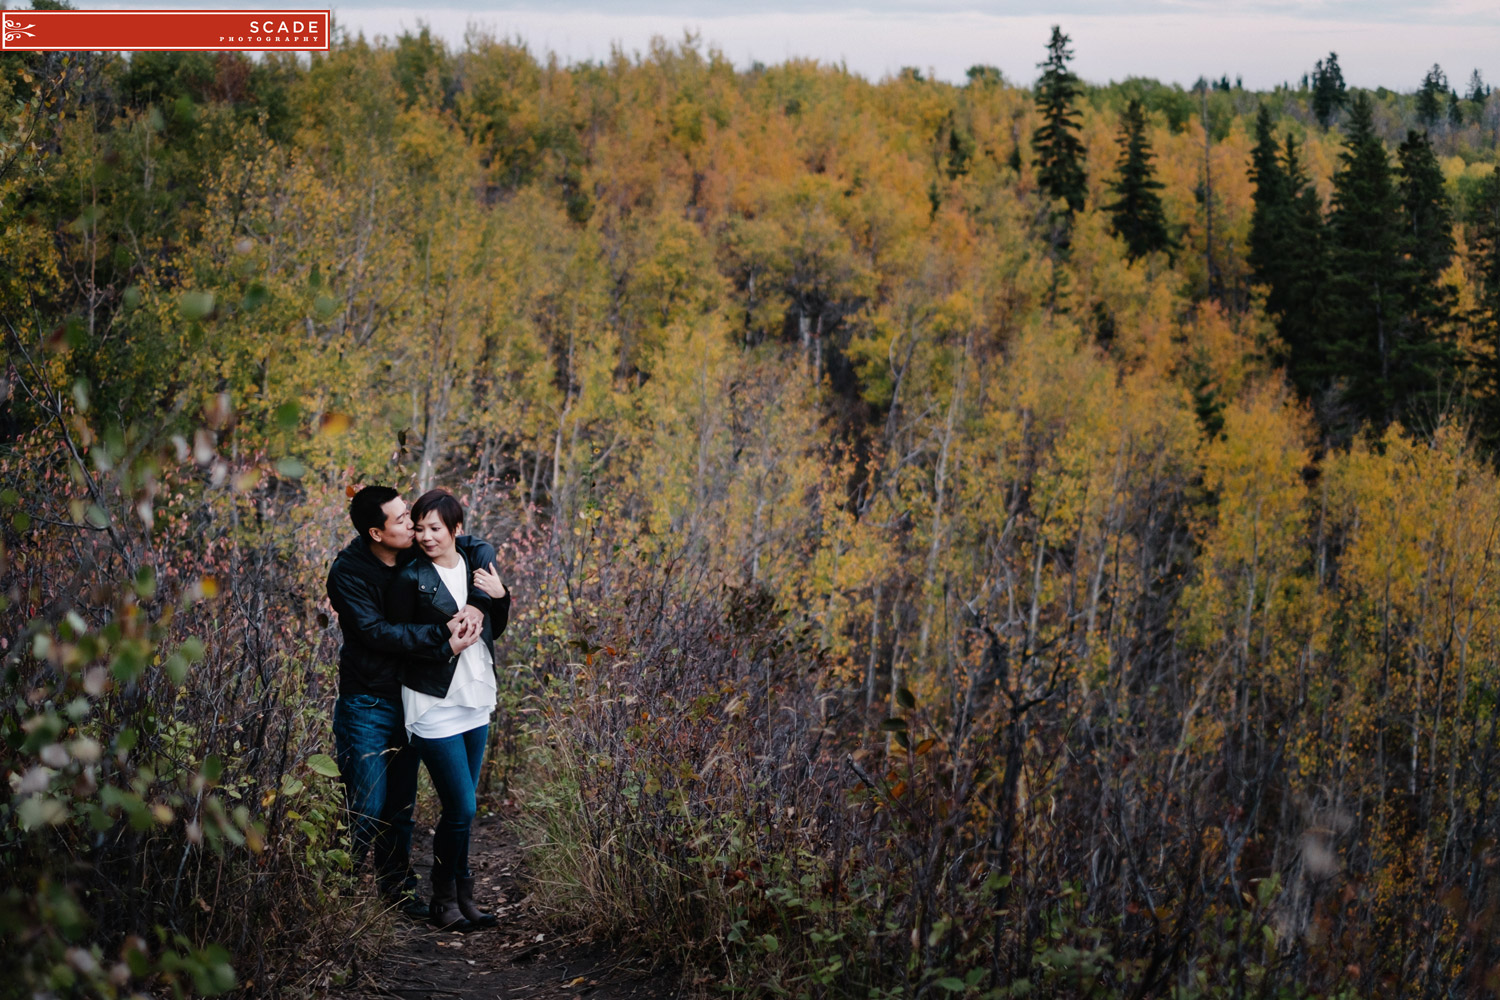 River Valley Couples Session - Dorothy and Dan - 0013.JPG